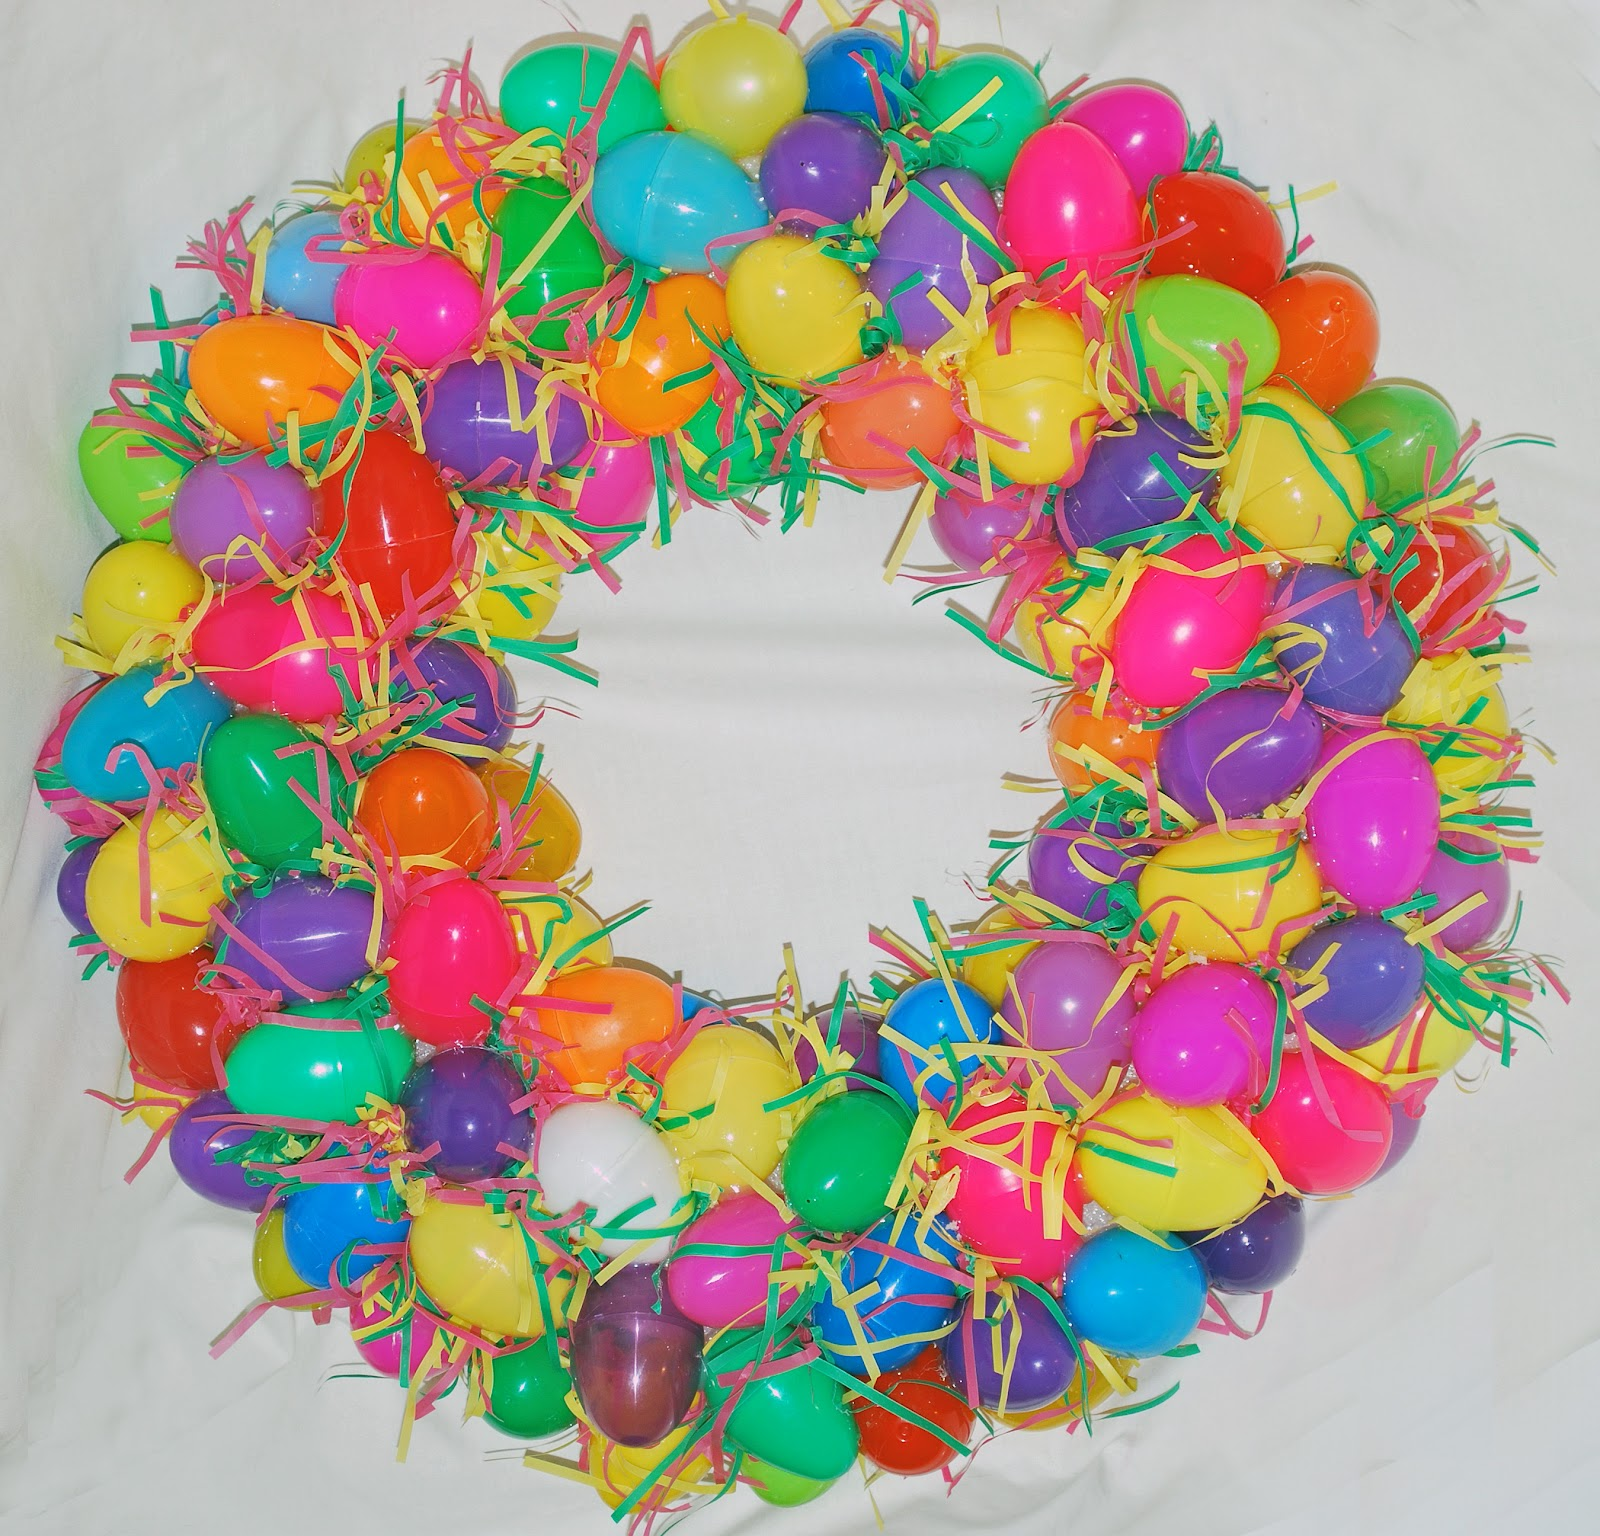 From The Dollar Store You Could Purchase Paper Gift Bag Grass These Eggs Are Not Decorated And It Still Looks